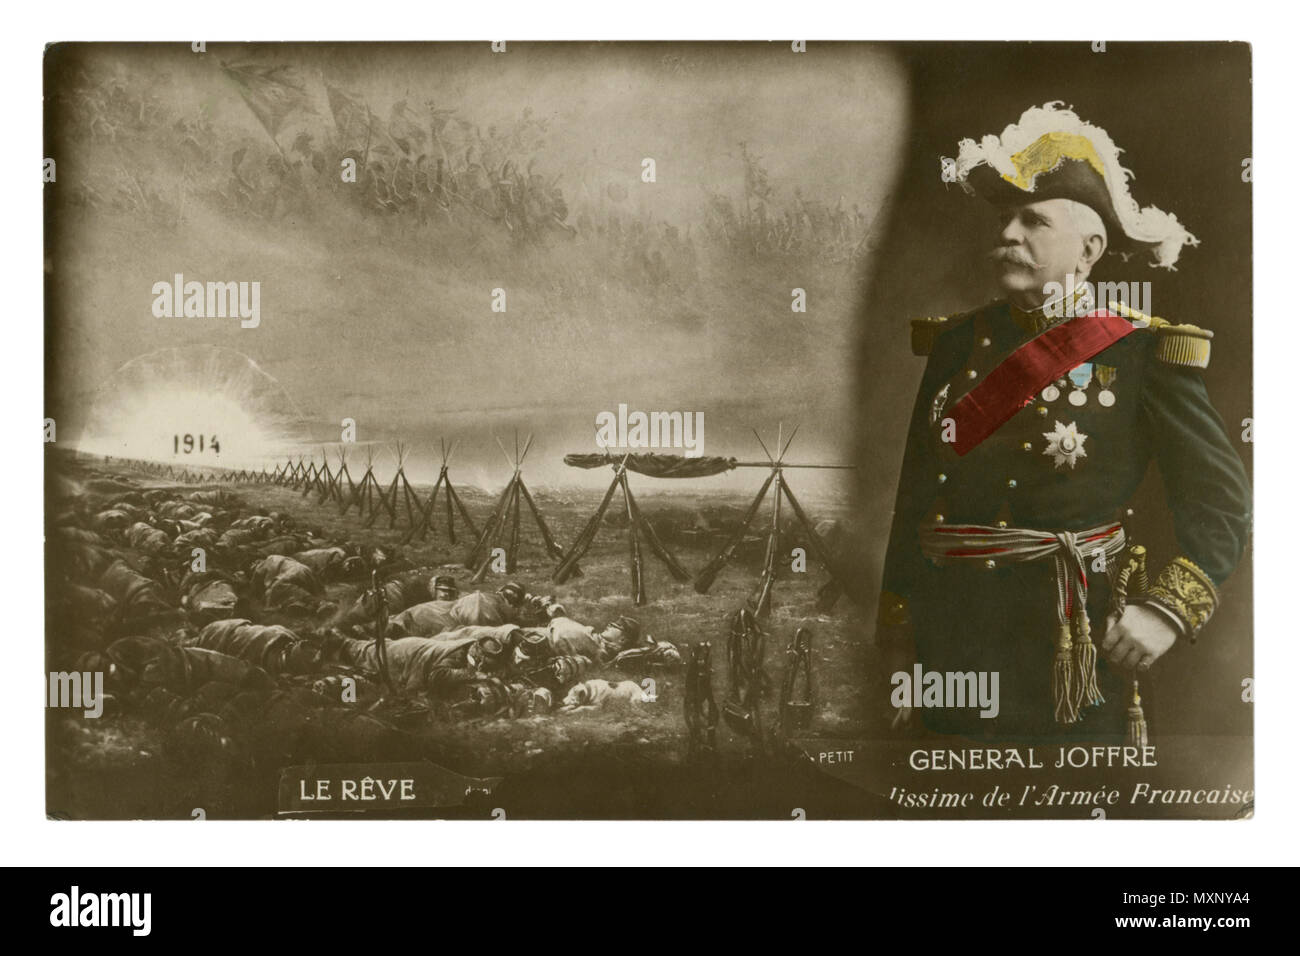 French historical photo postcard: General Joffre in full uniform  with medals. The army sleeps after the battle. Rising sun. world war one 1914-1918. - Stock Image